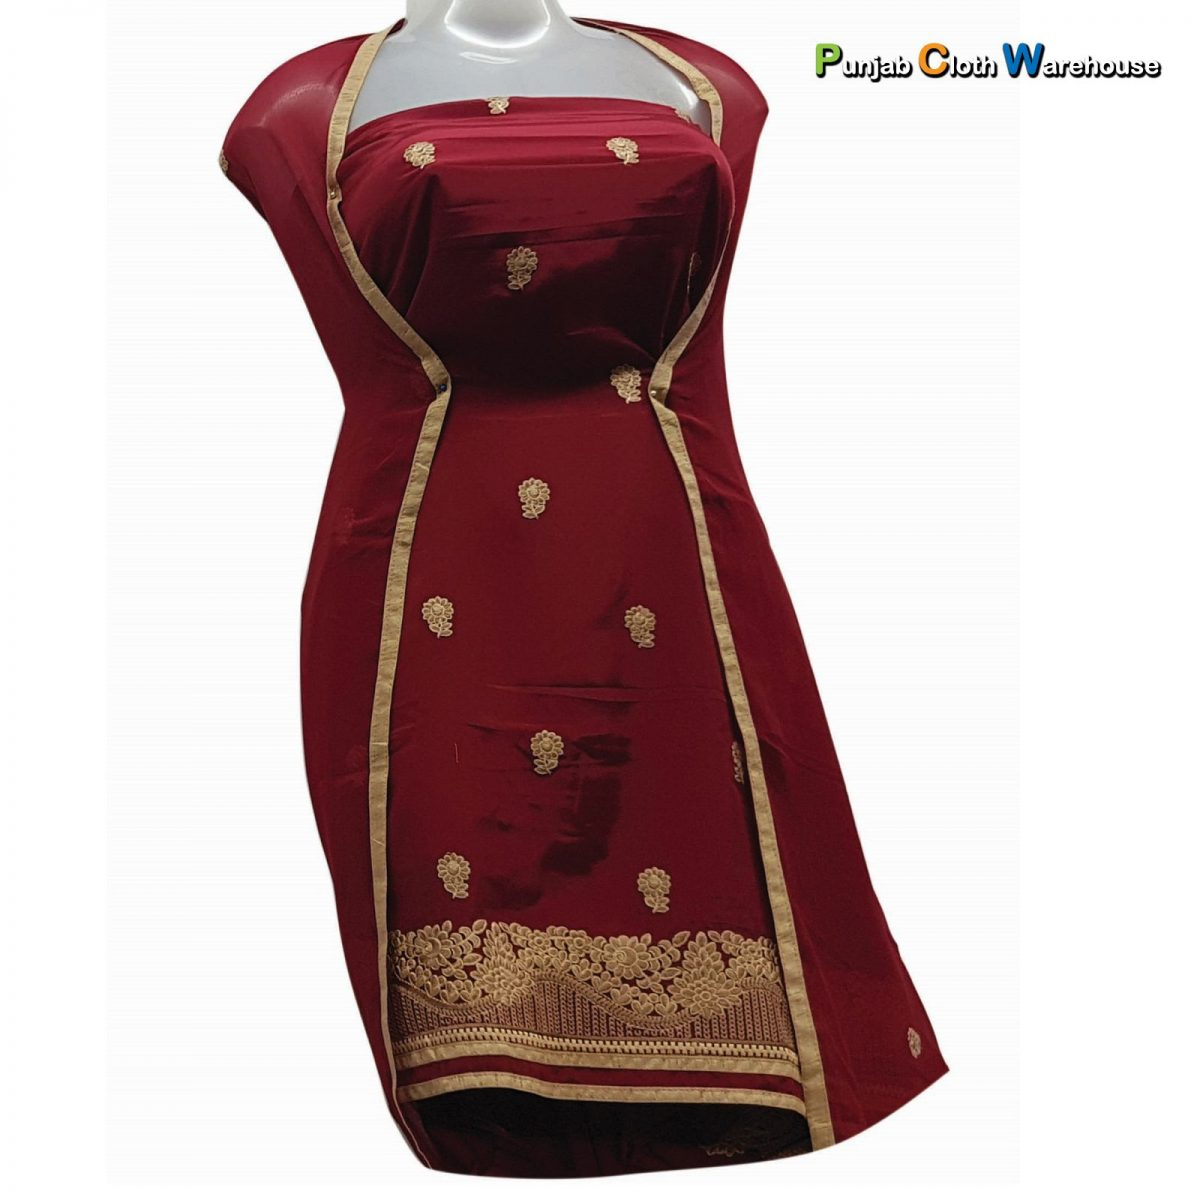 Ladies Suits - Cut Piece - Punjab Cloth Warehouse, Surrey (42)